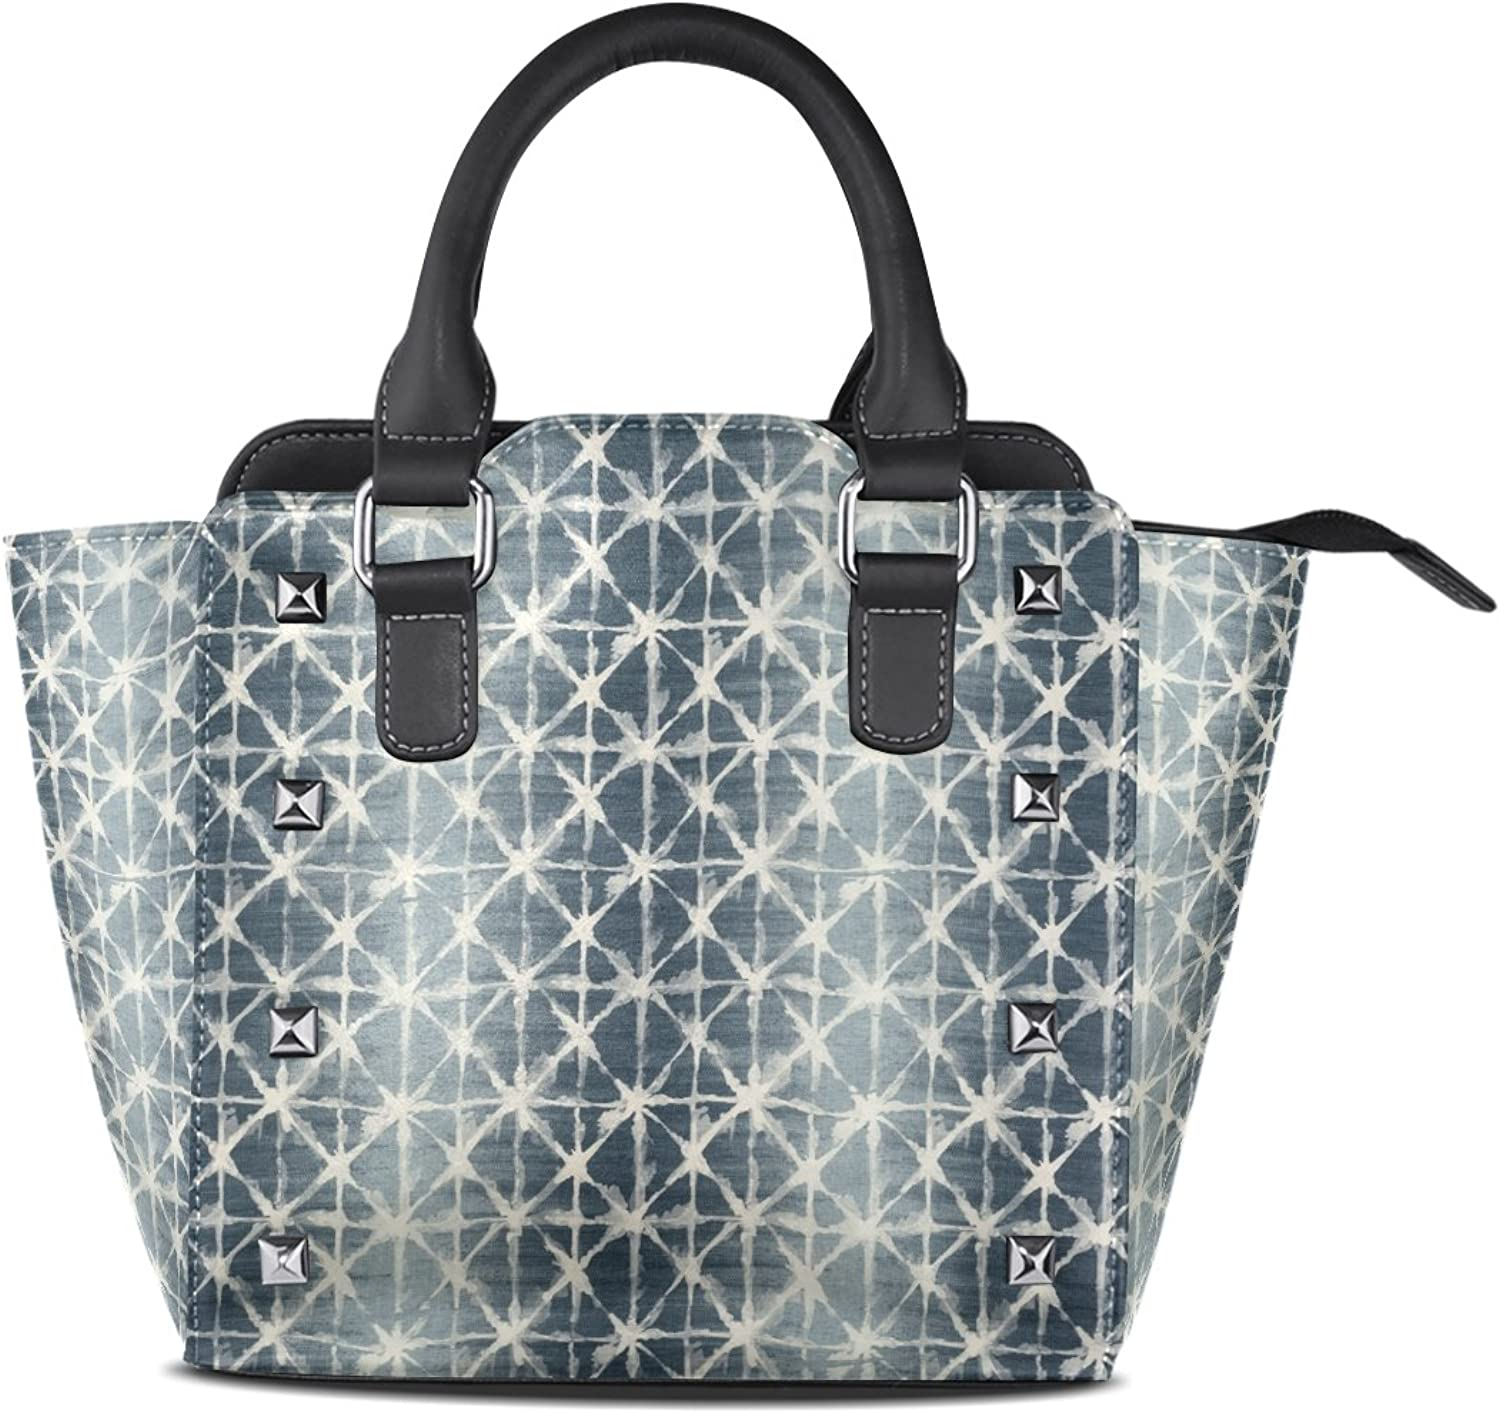 Sunlome Geometry Print Women's Leather Tote Shoulder Bags Handbags